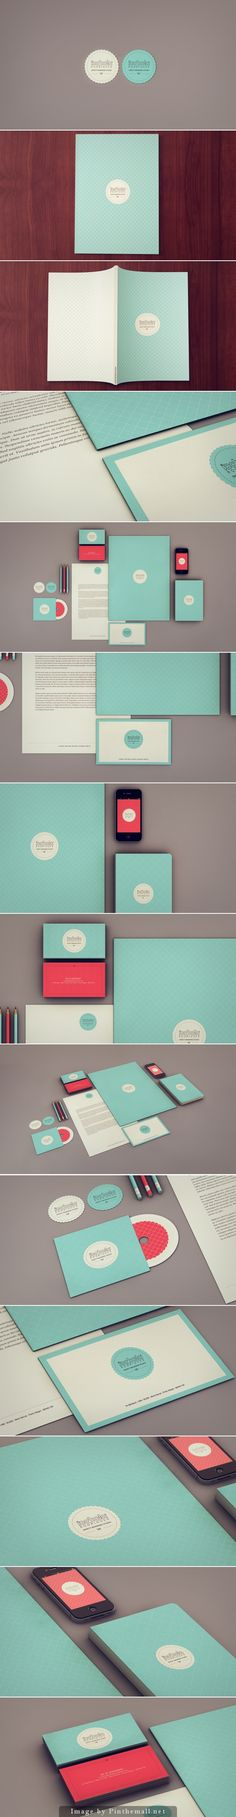 Isabela Rodrigues personal brand ID